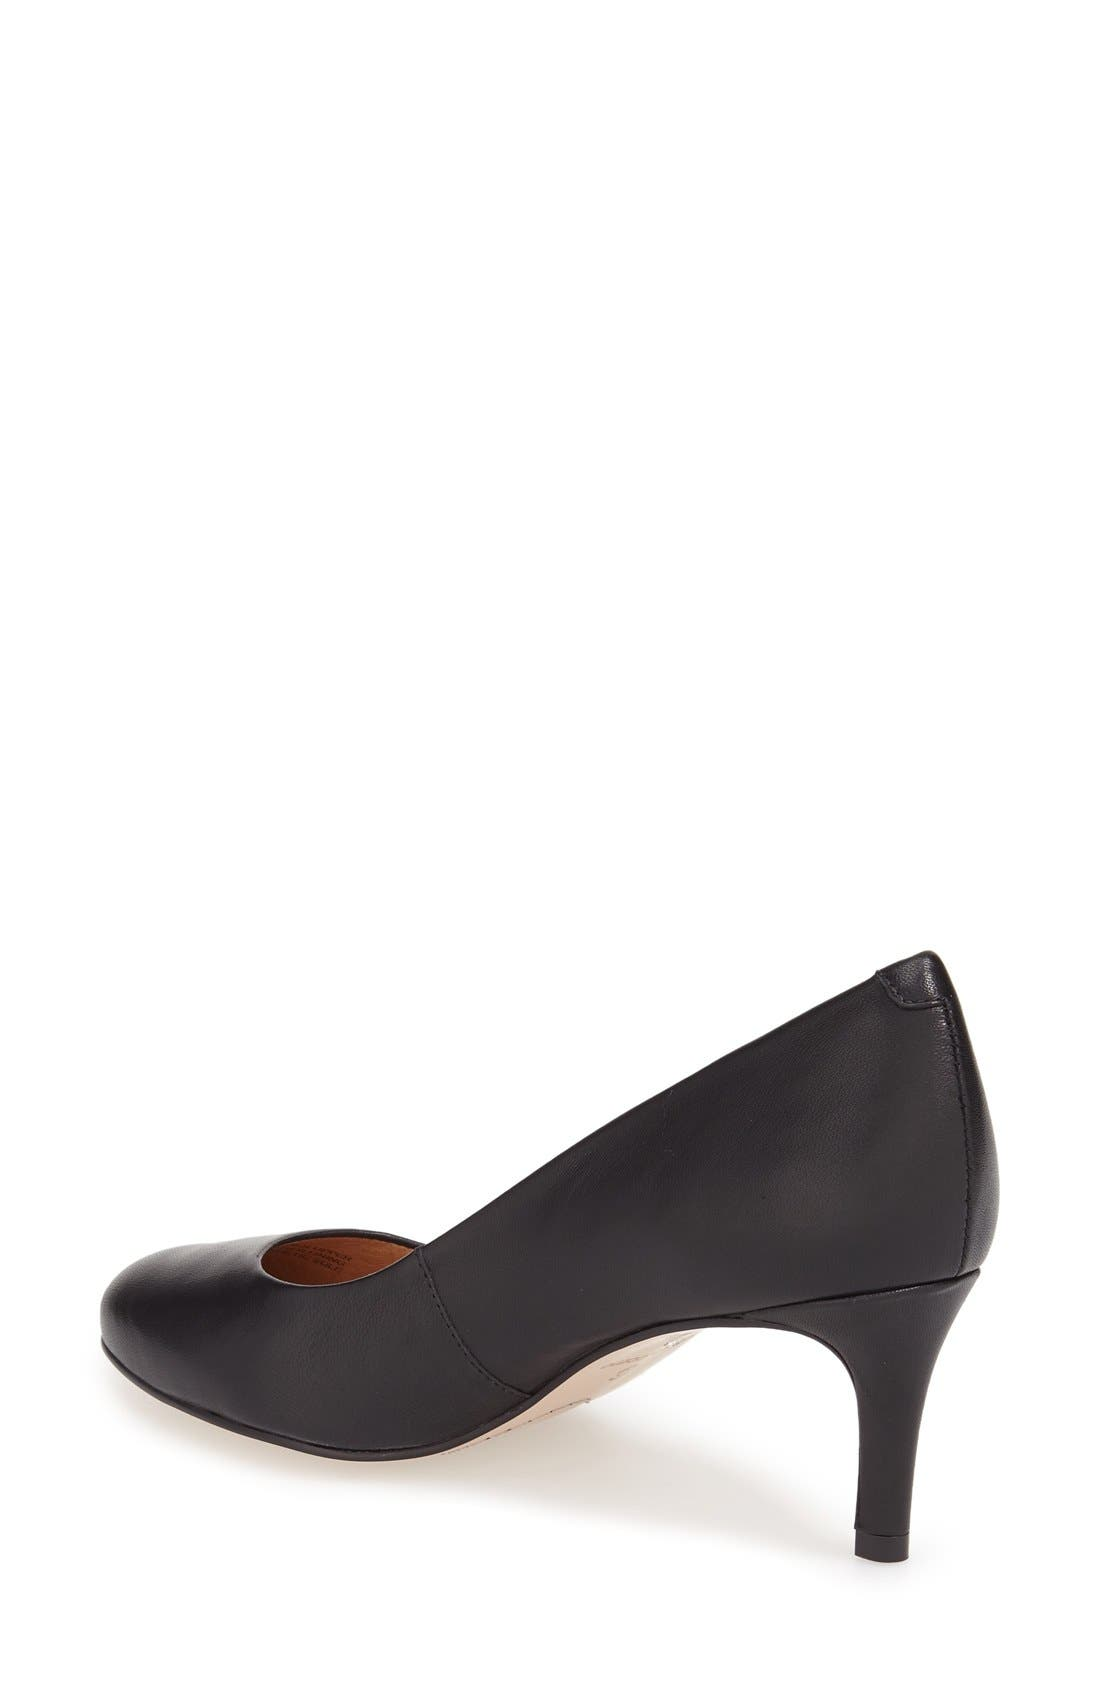 CC Corso Como 'Linden' Pump,                             Alternate thumbnail 5, color,